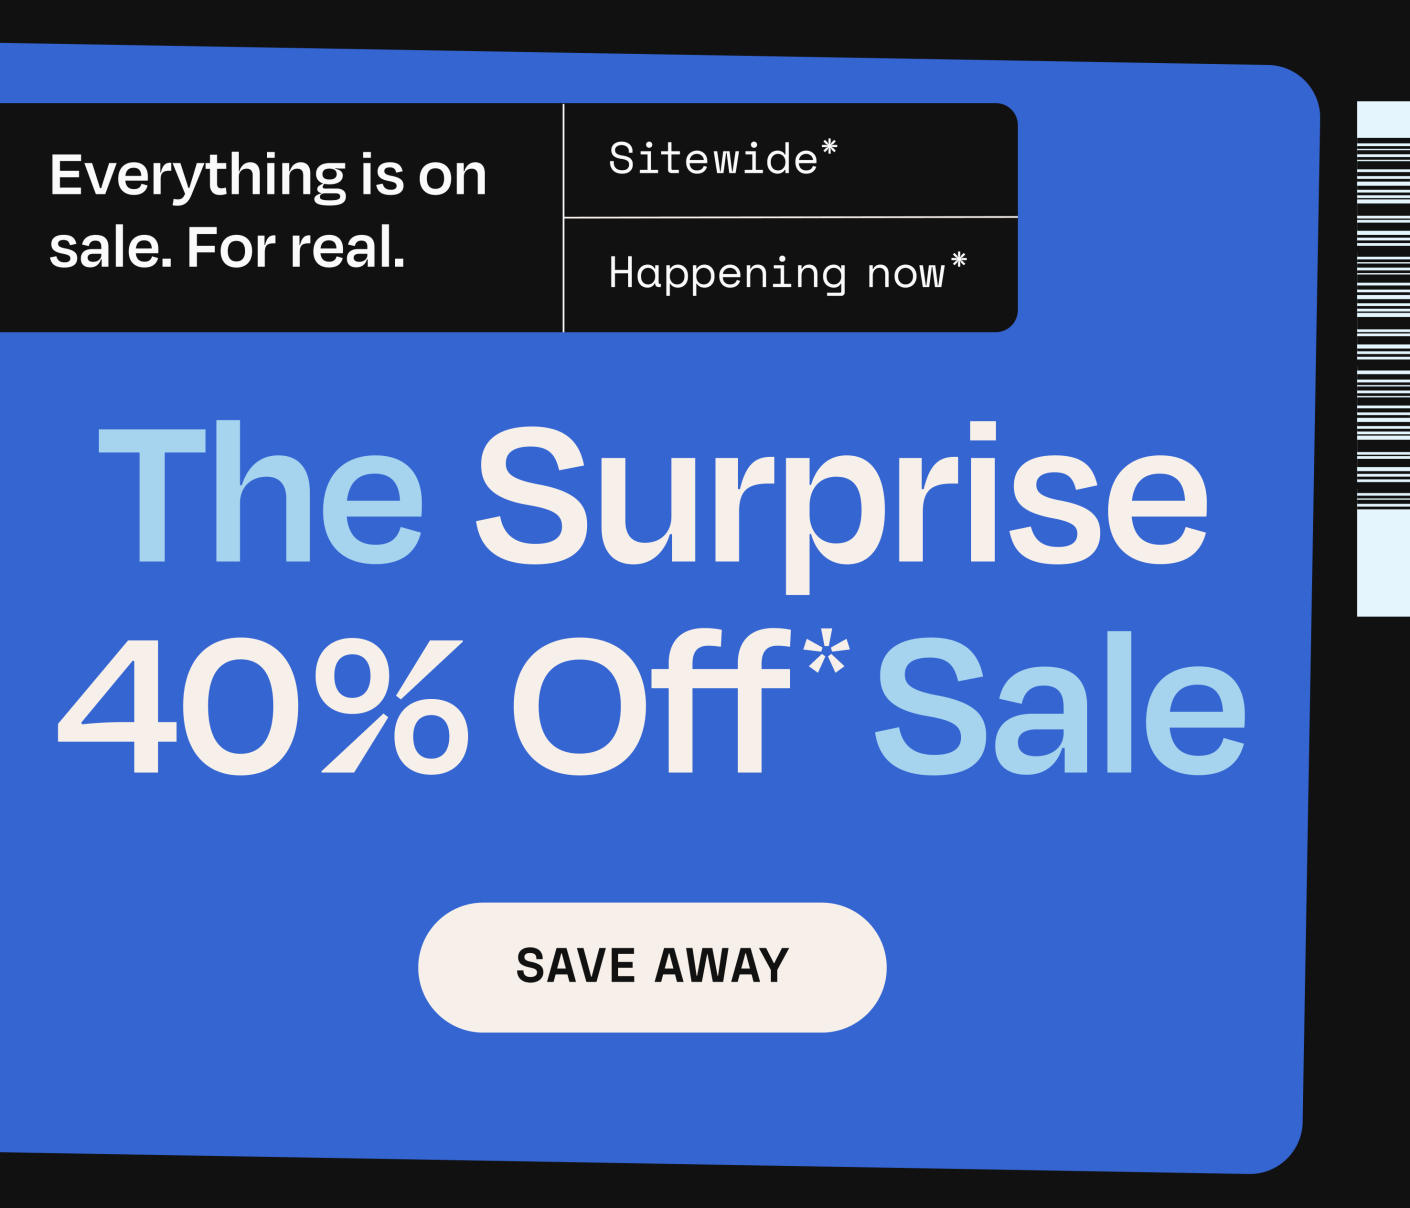 The Surprise 40% off Sale. Everything is on sale. For real. Sitewide. Happening now.